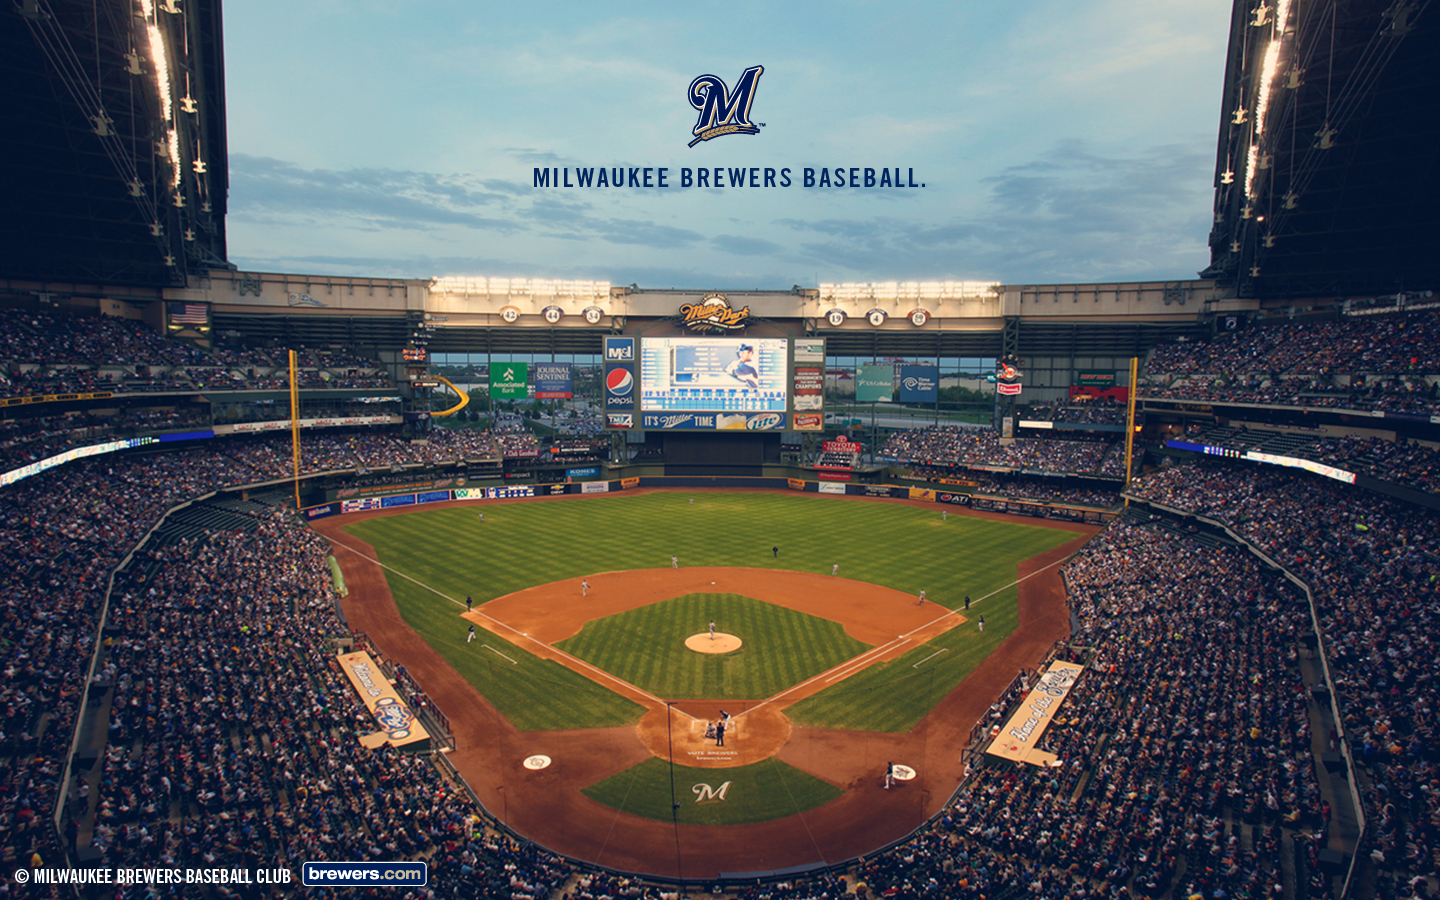 48] Milwaukee Brewers Wallpaper Desktop on WallpaperSafari 1440x900